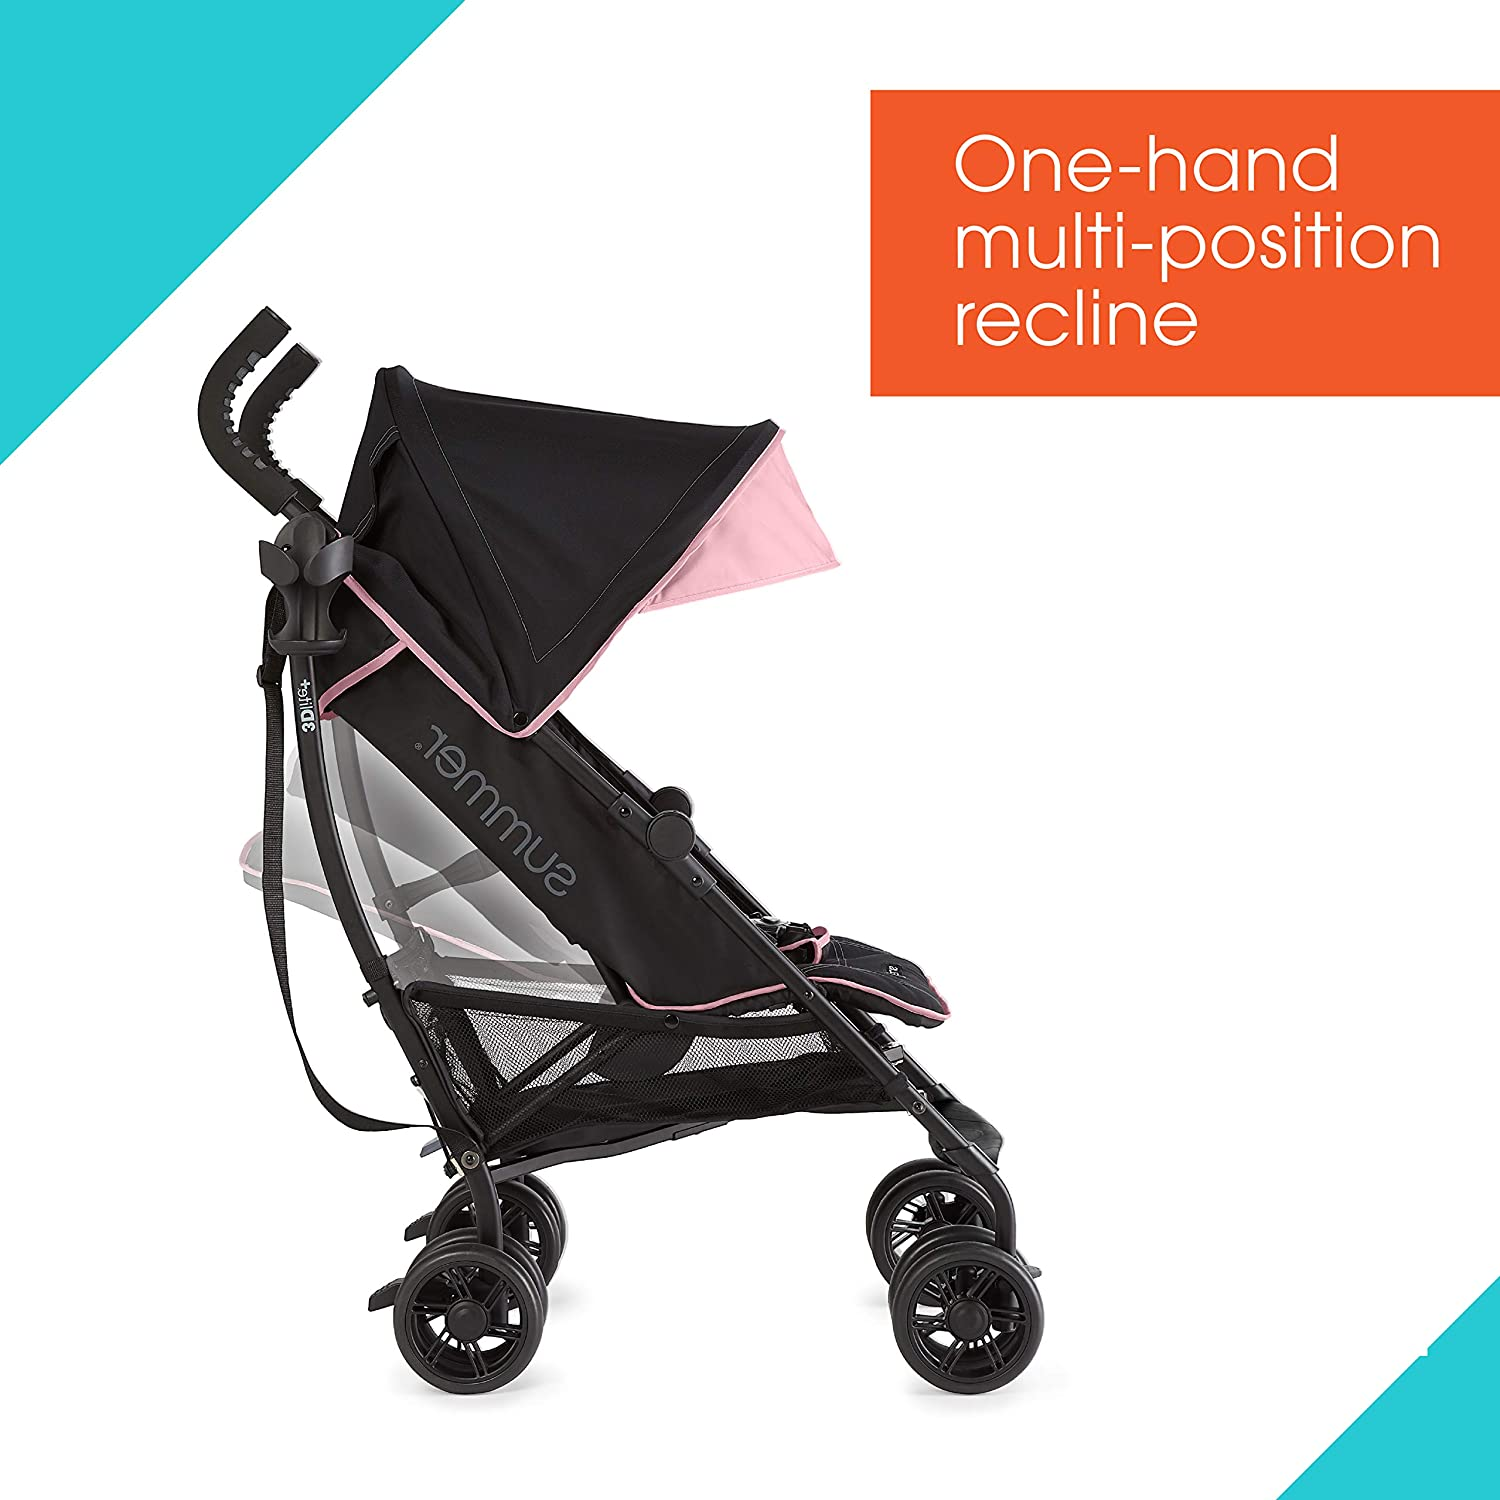 Summer 3Dlite+ Convenience Stroller, Pink/Matte Black – Lightweight Umbrella Stroller with Oversized Canopy, Extra-Large Storage and Compact Fold